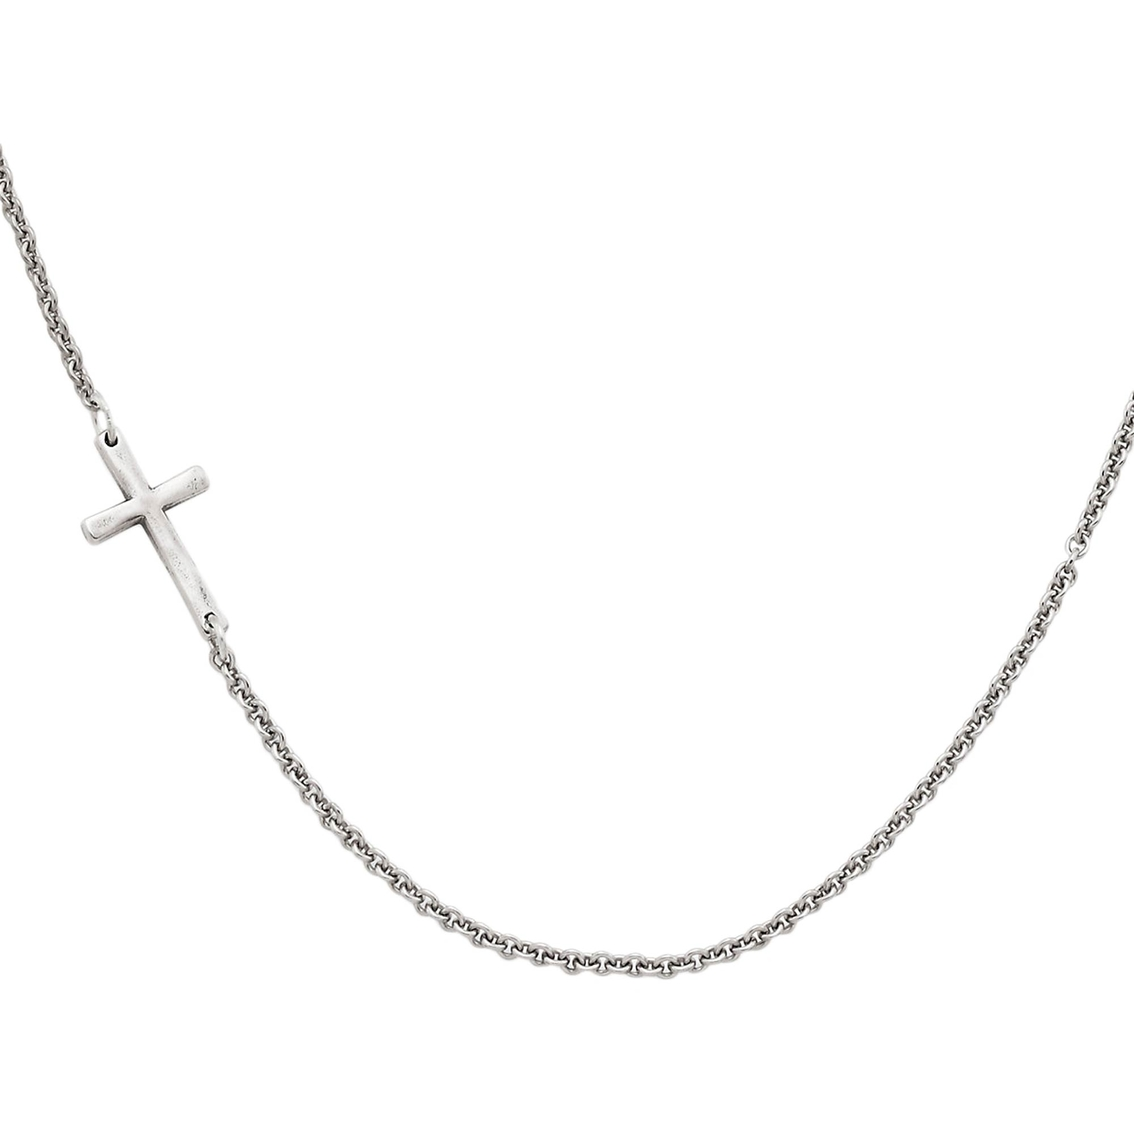 James Avery Horizon Cross Necklace 20 In.   Silver Necklaces ...